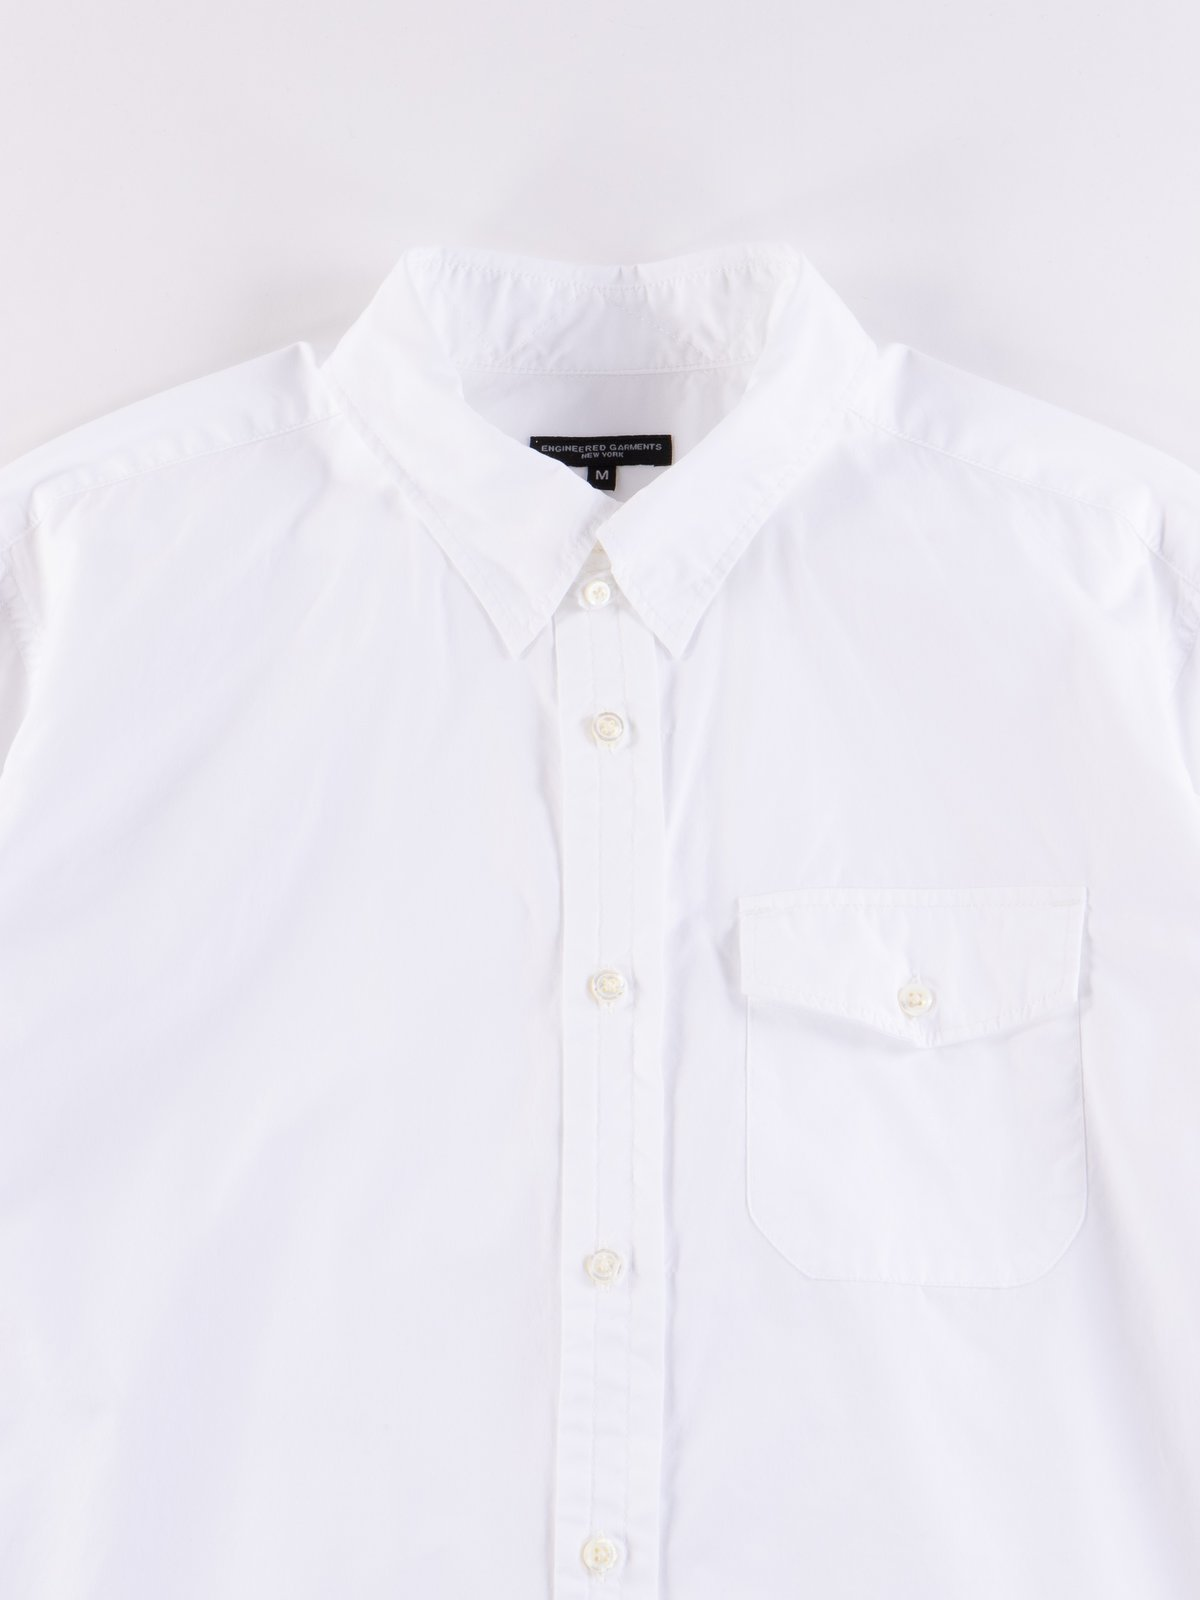 White 100's 2Ply Broadcloth Tab Collar Shirt - Image 3